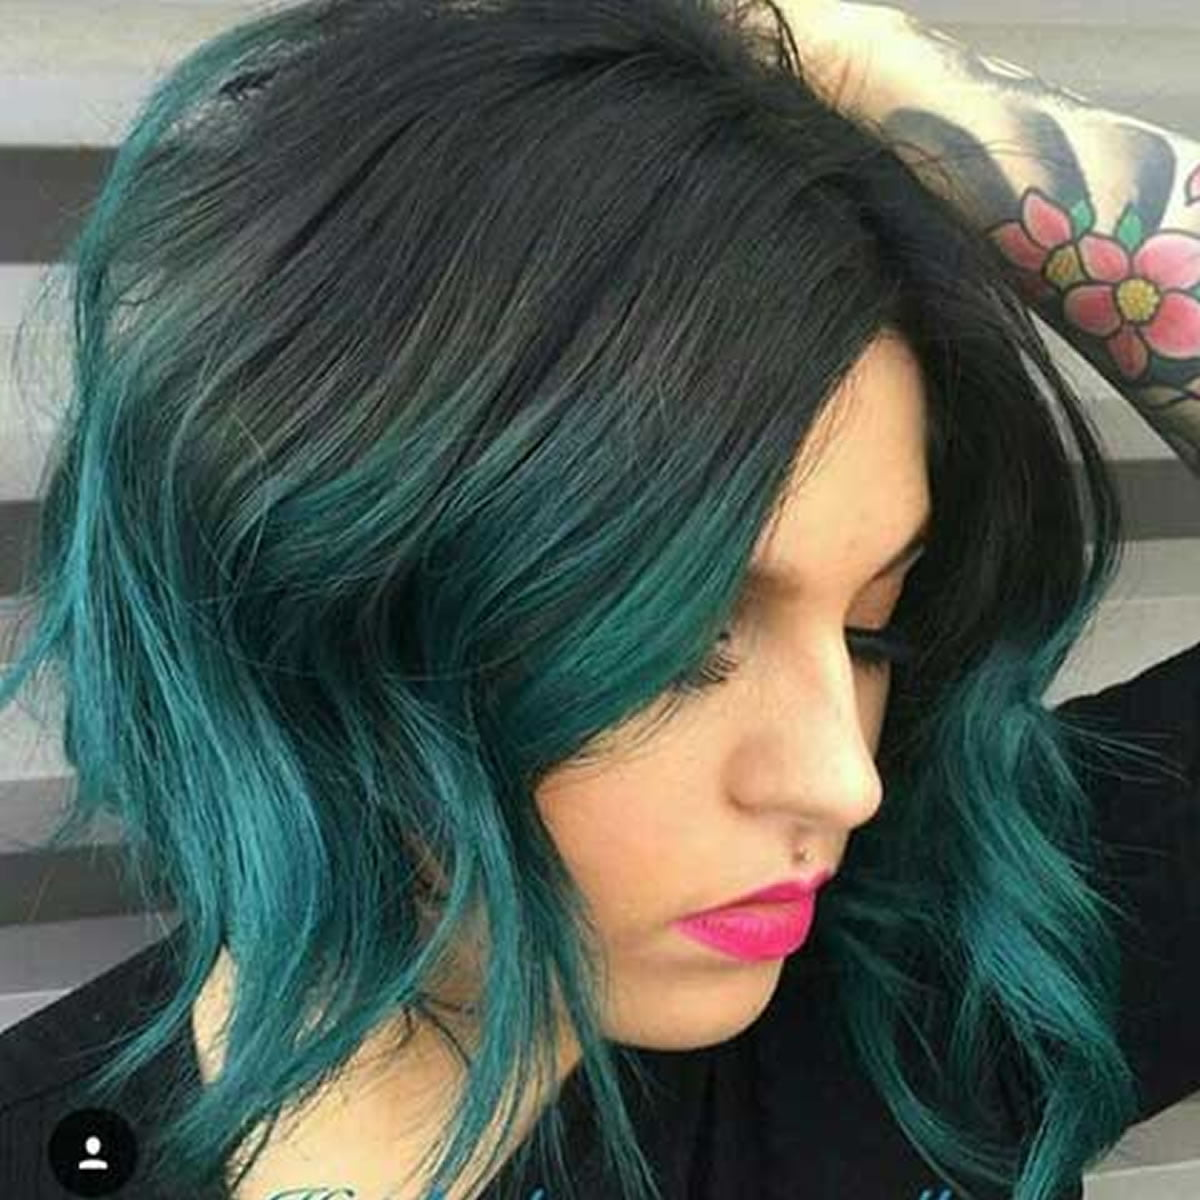 53 The Coolest Short Hairstyles and Hair Colors for Women 20182019  Page 8  HAIRSTYLES